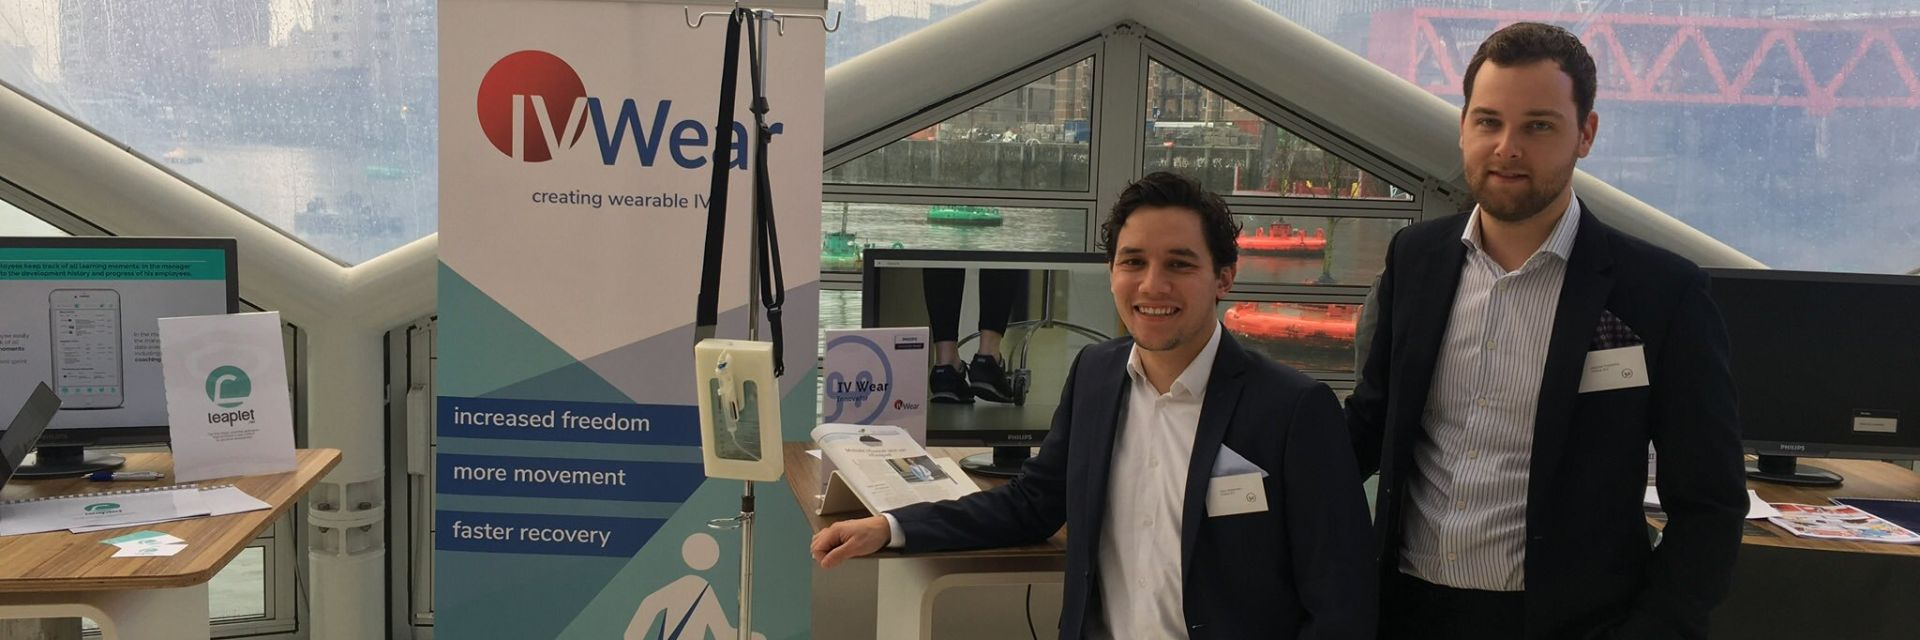 Start-up IVWear in finals Philips Innovation Award